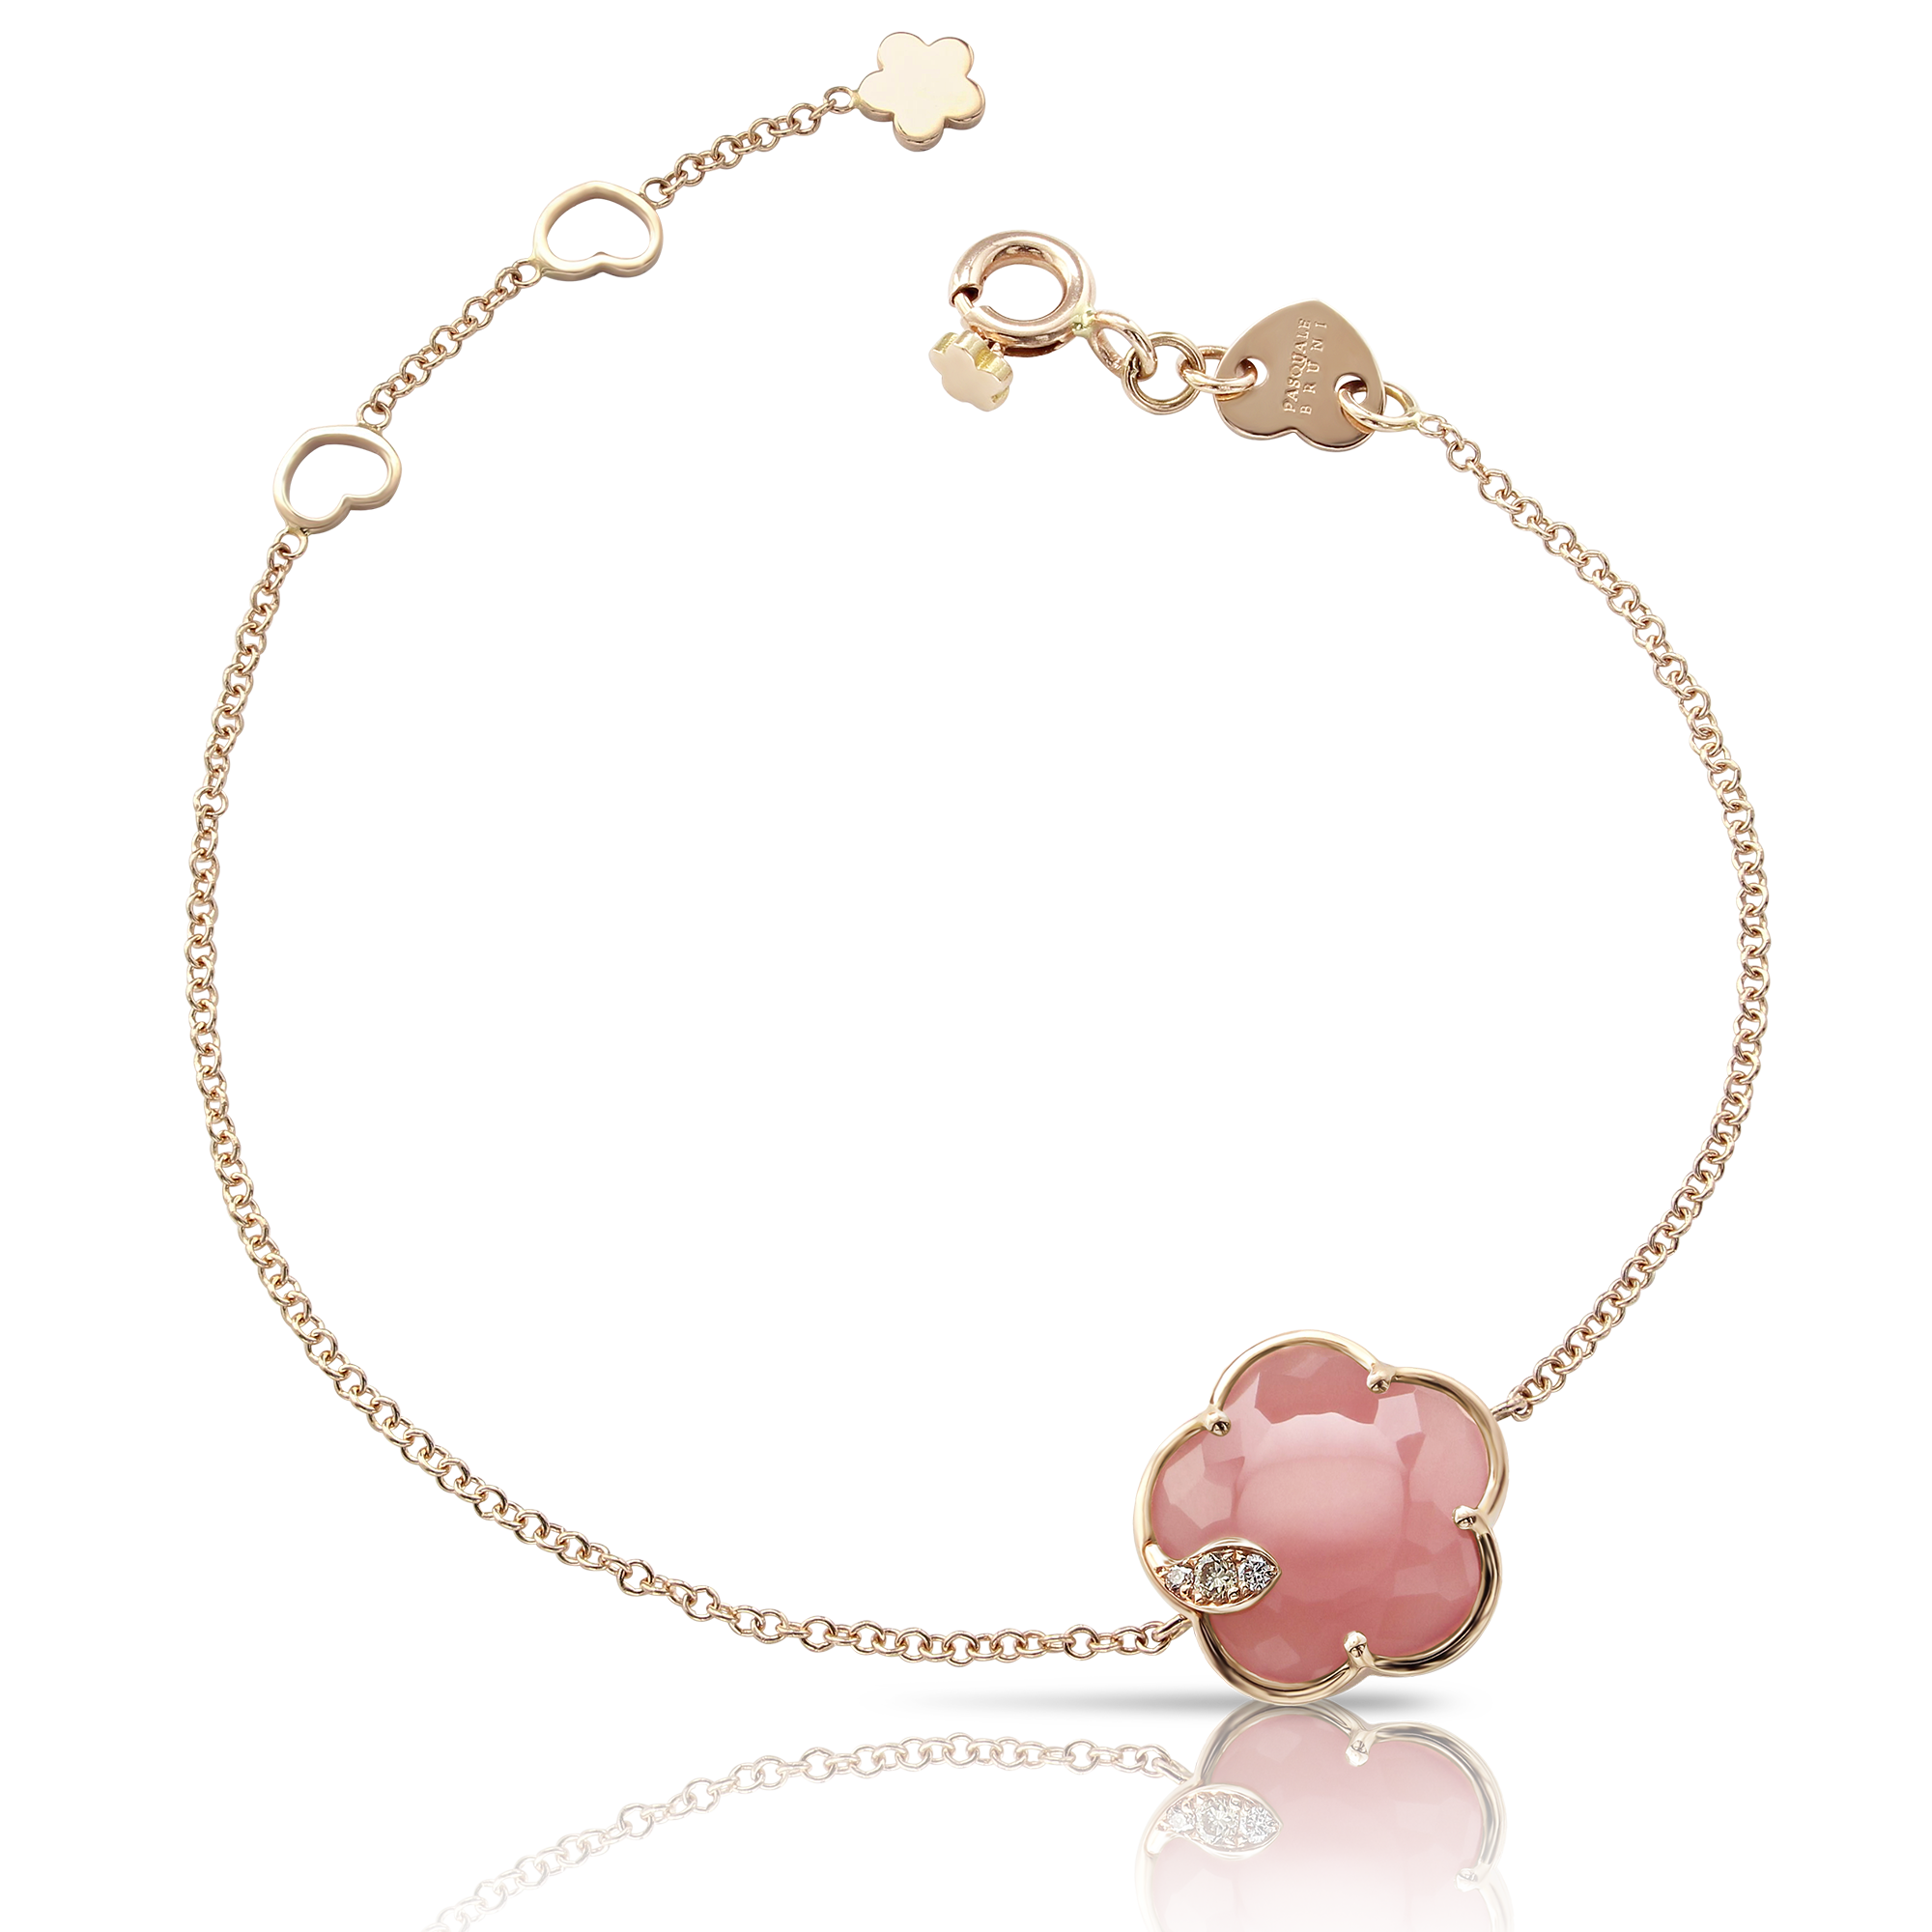 NEW 18k Rose Gold Petit Joli Bracelet with Pink Chalcedony, White and Champagne Diamonds